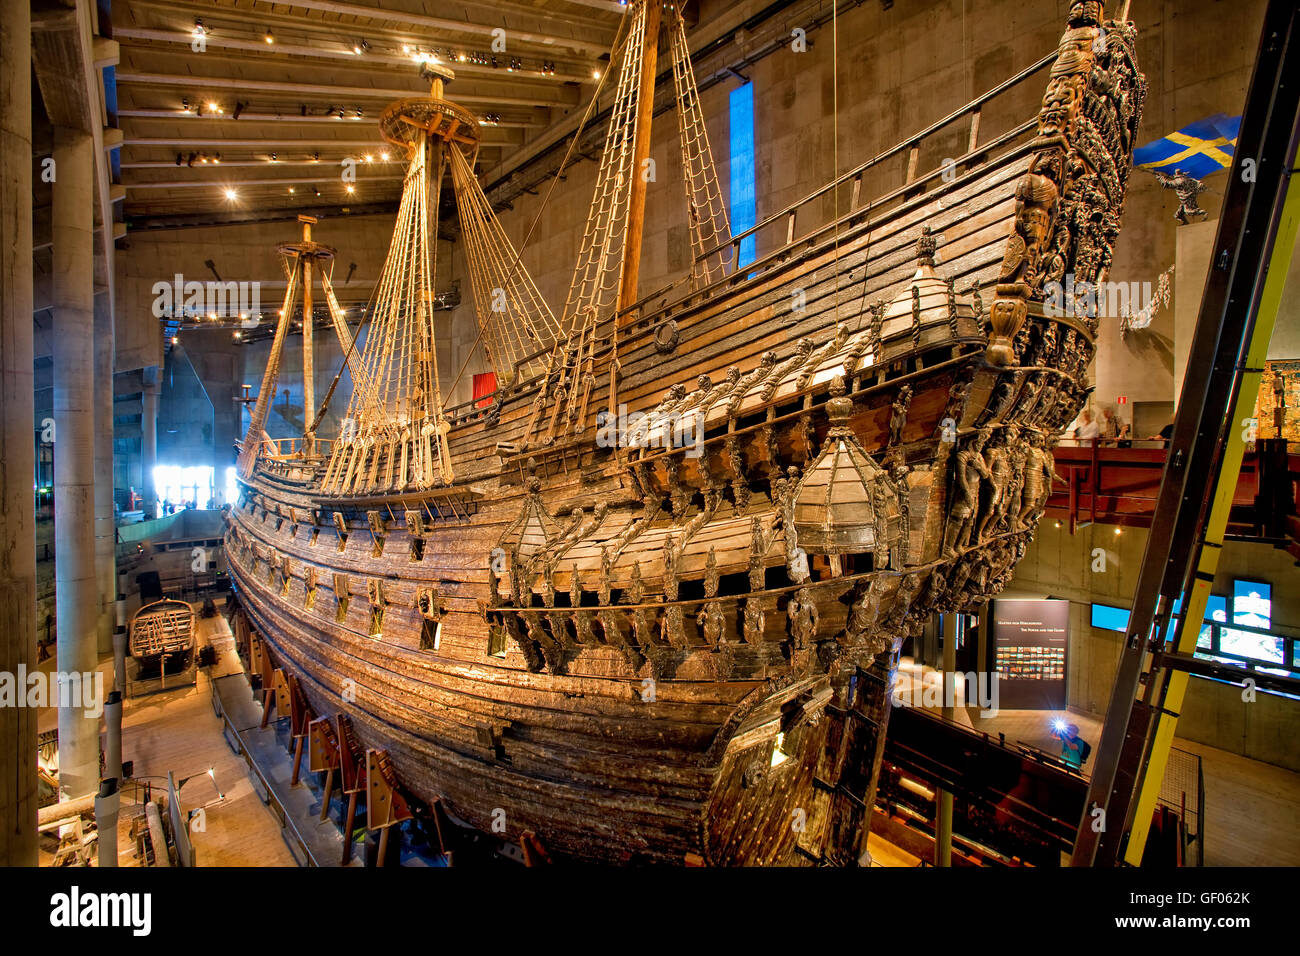 The flagship Vasa in Vasa Museum, Djurgarden, Stockholm - Stock Image